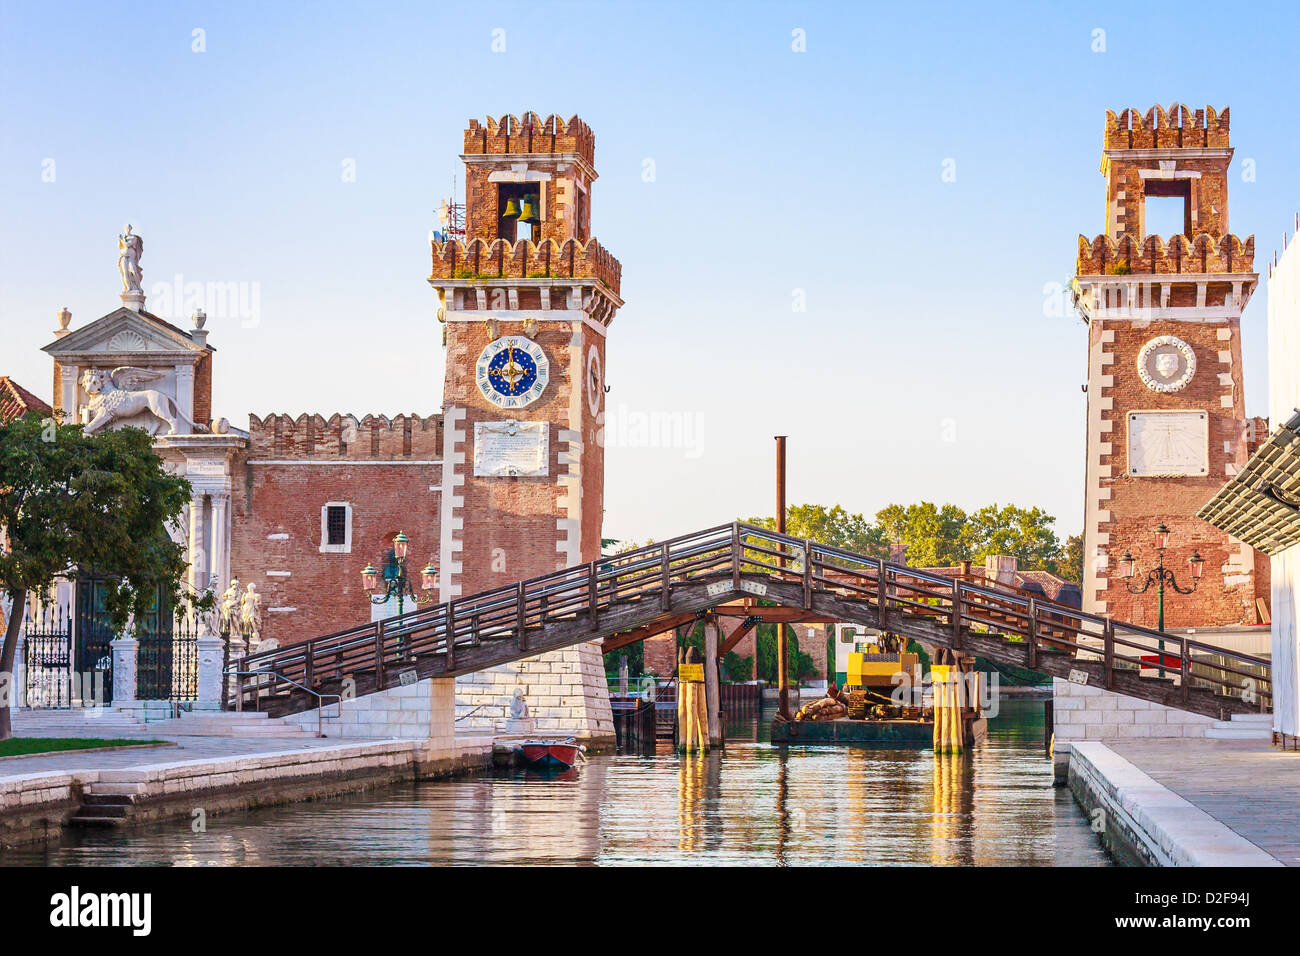 Venice, Arsenale historic shipyard, Gate and Canal View - Stock Image